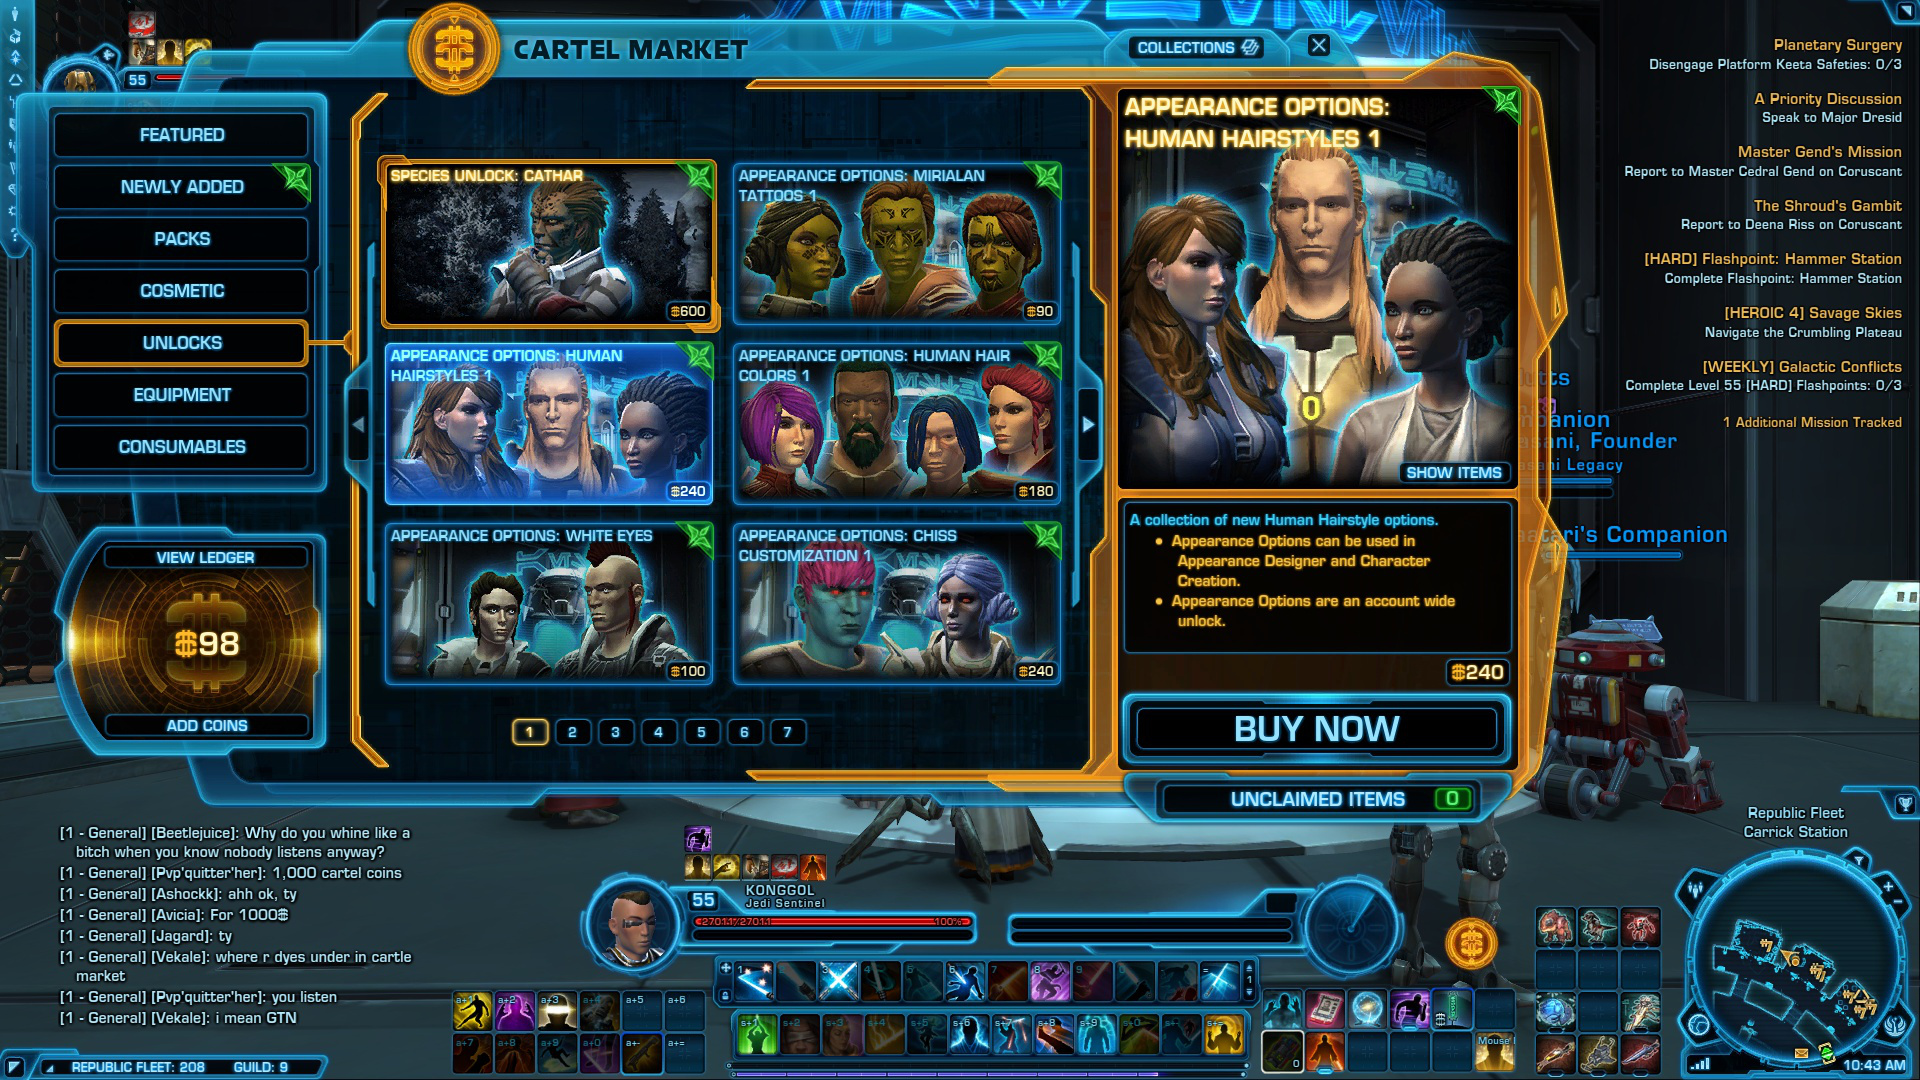 SWTOR Game Update 2 1 Points to an Awful New Direction